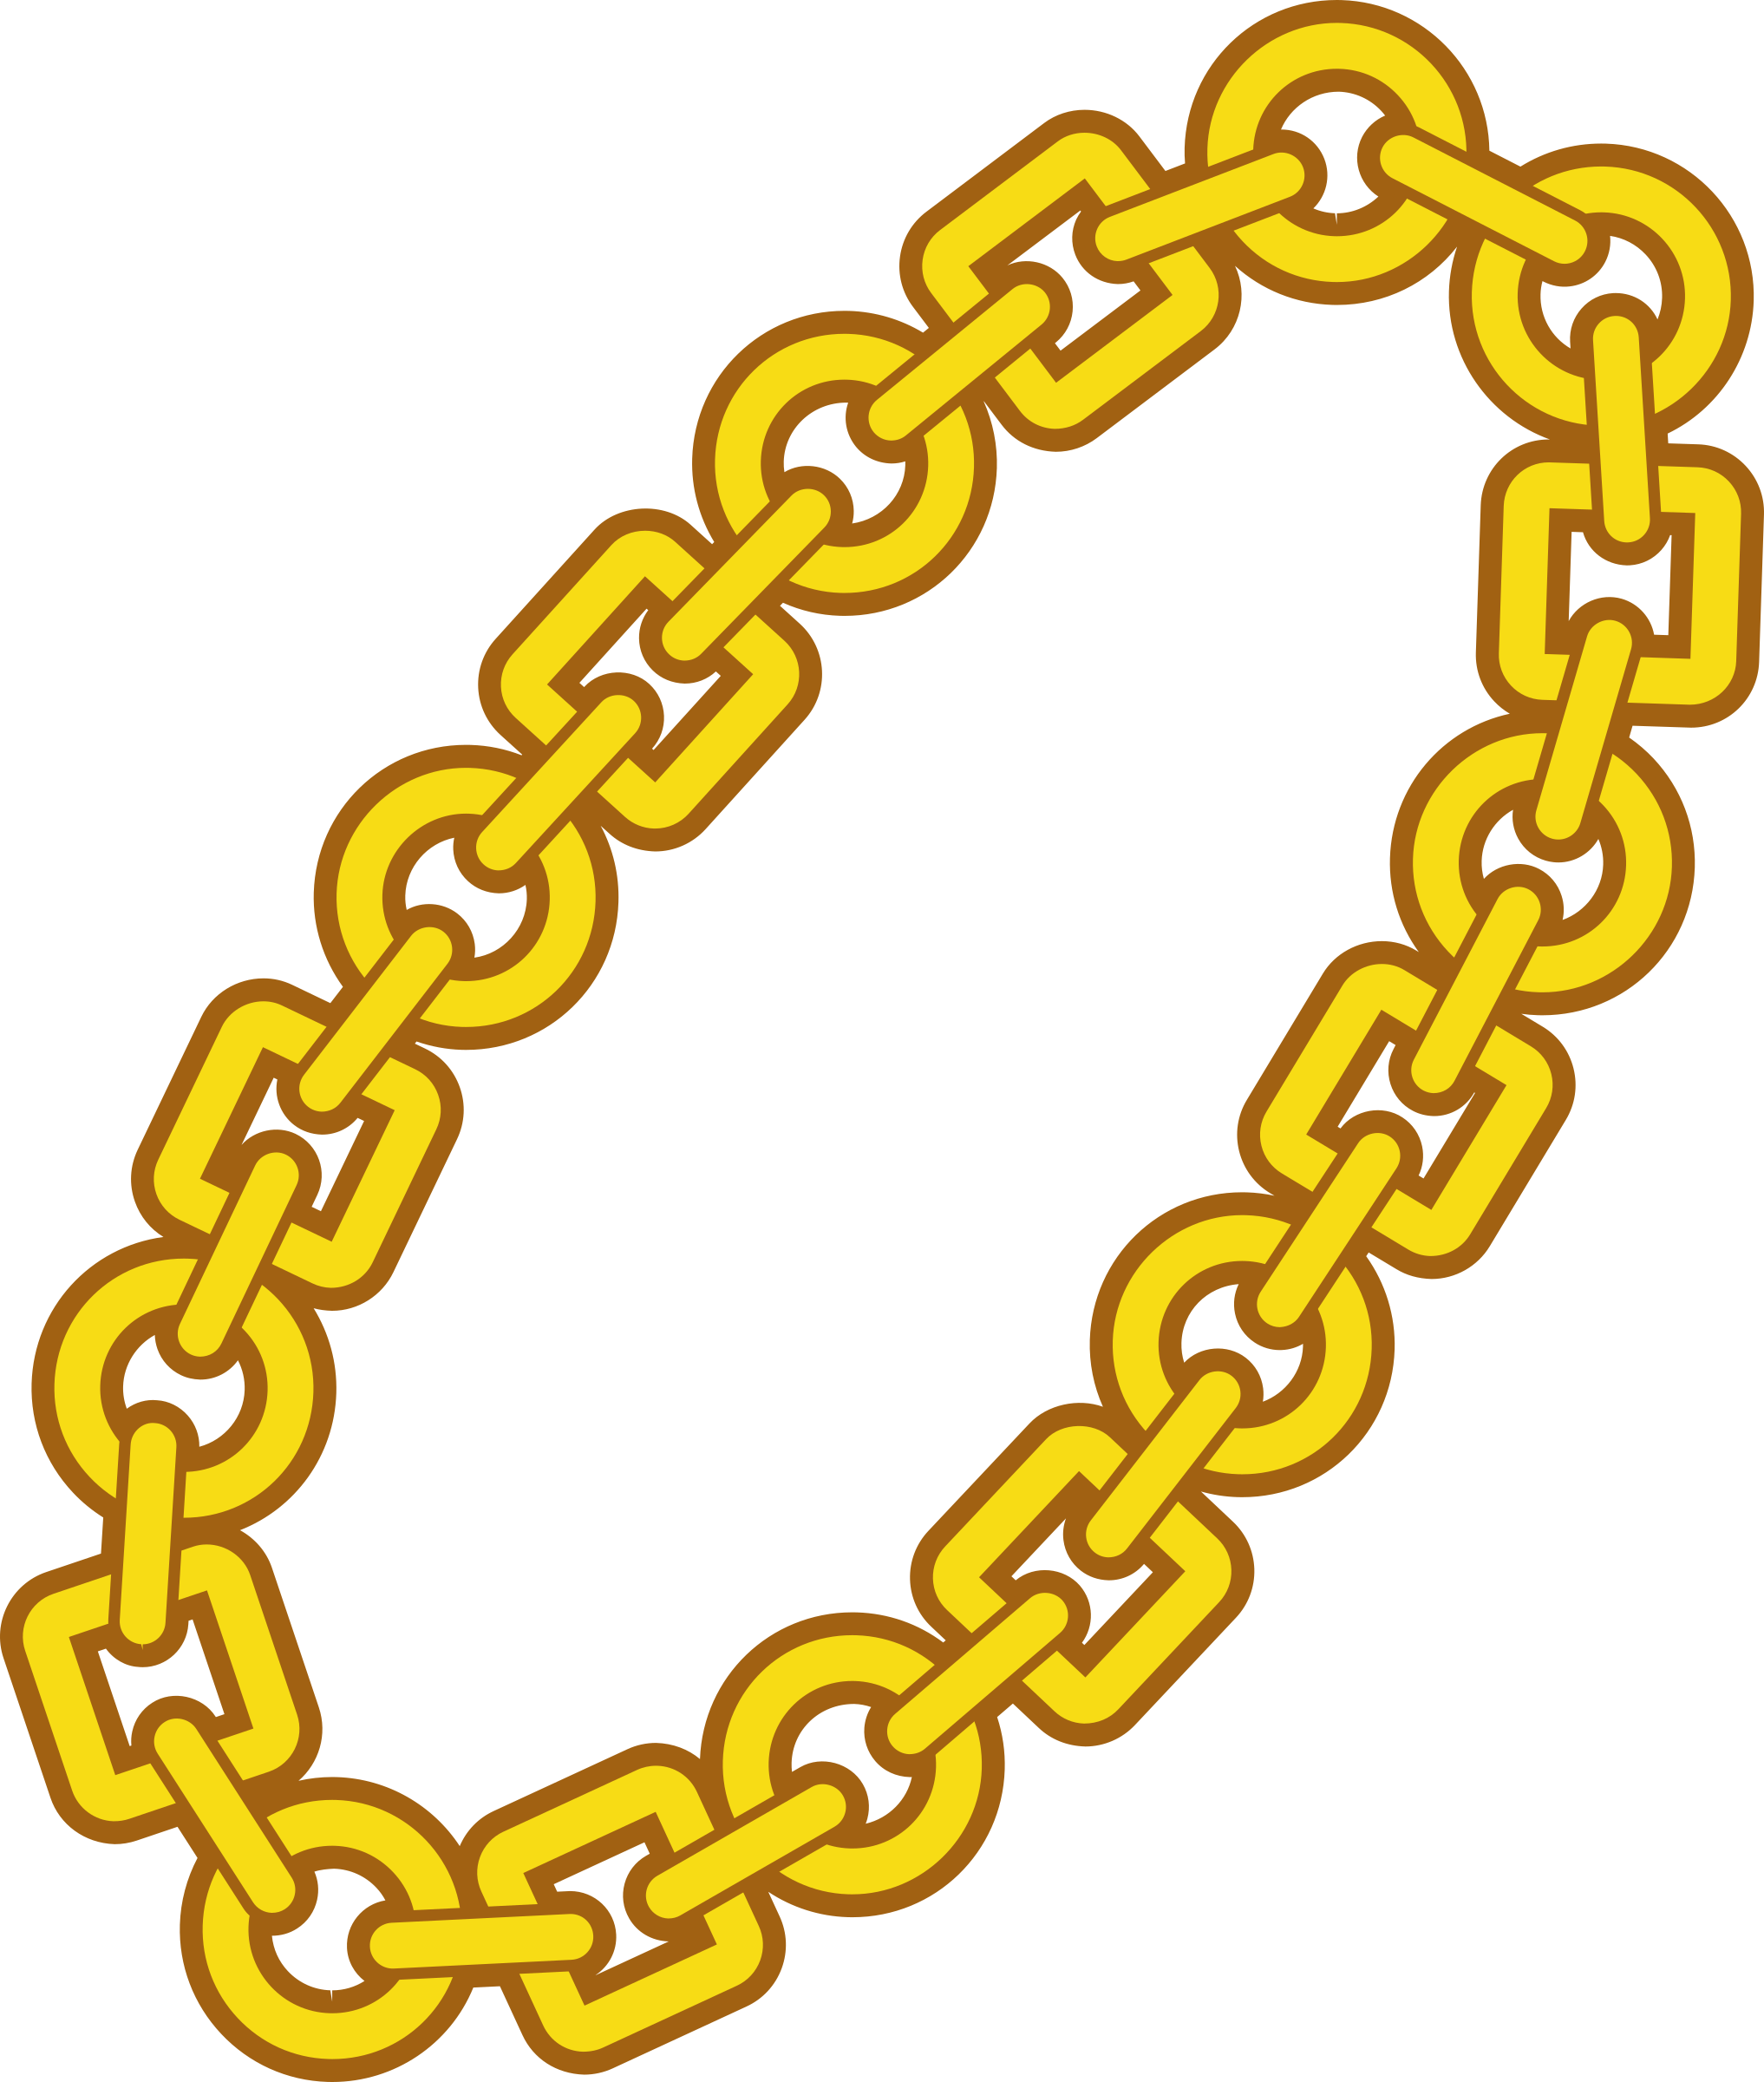 Spelling clipart chain. Ring icons png free